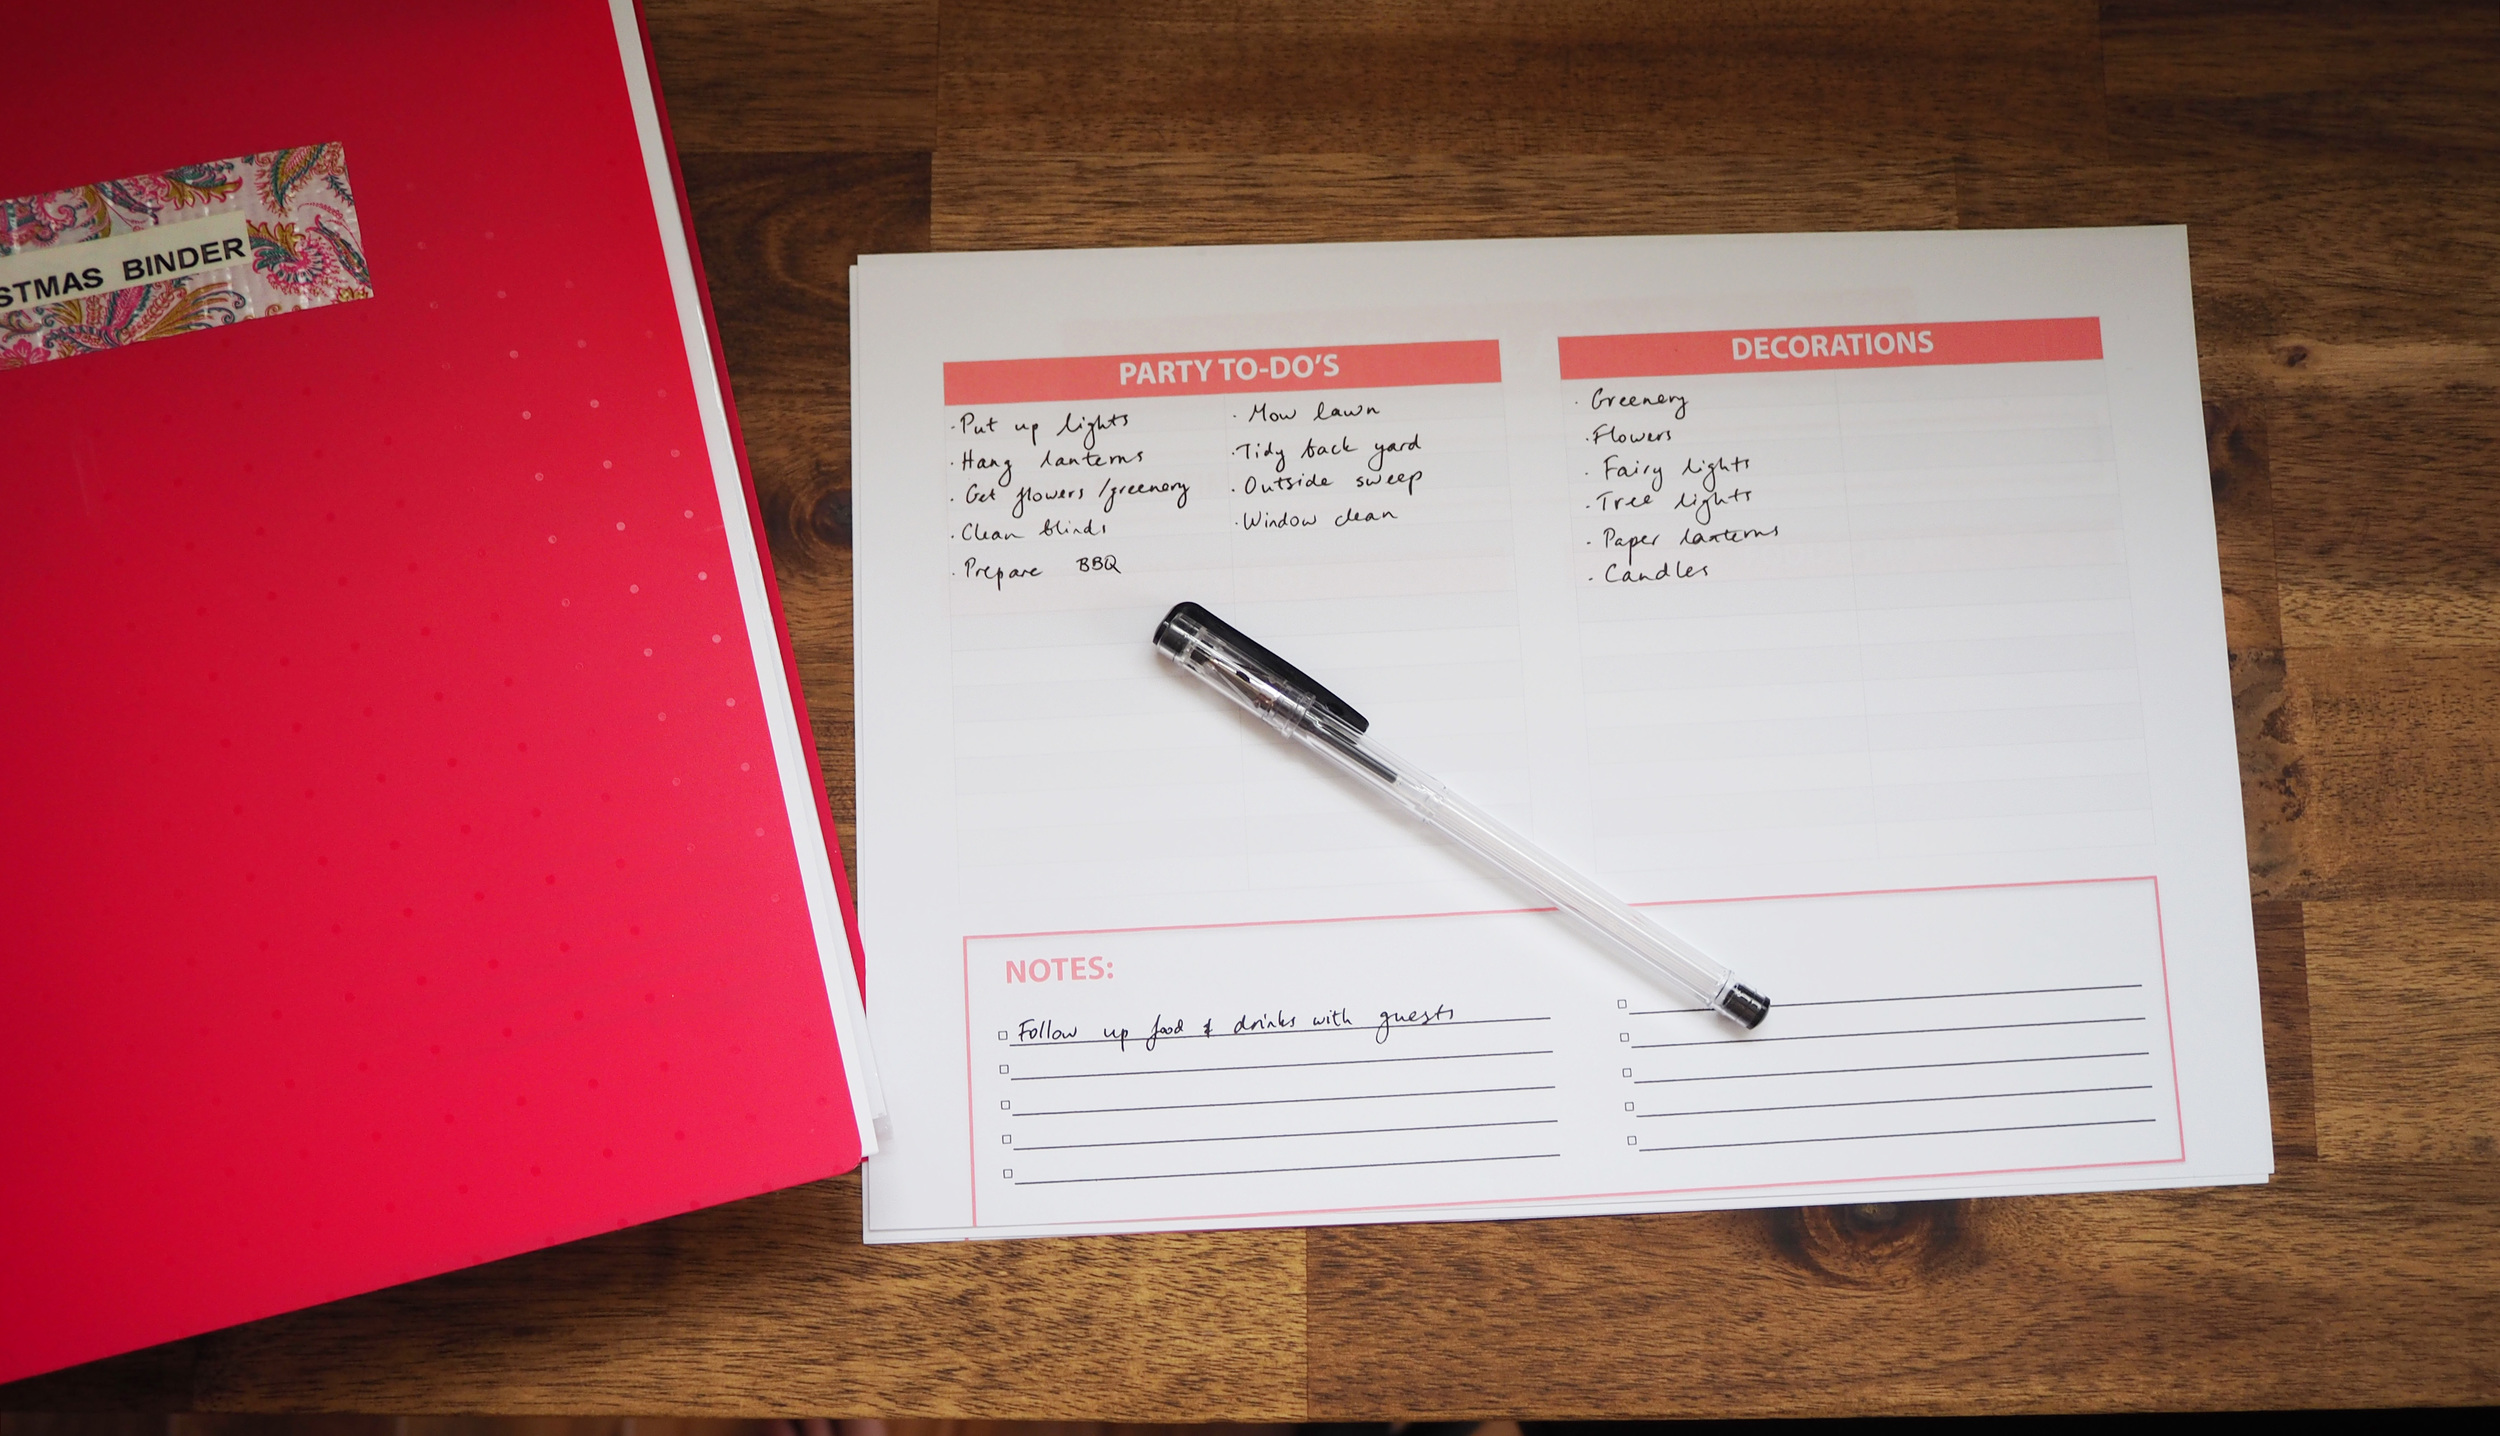 Party planning checklist - to-do list to keep on track with your party preparations